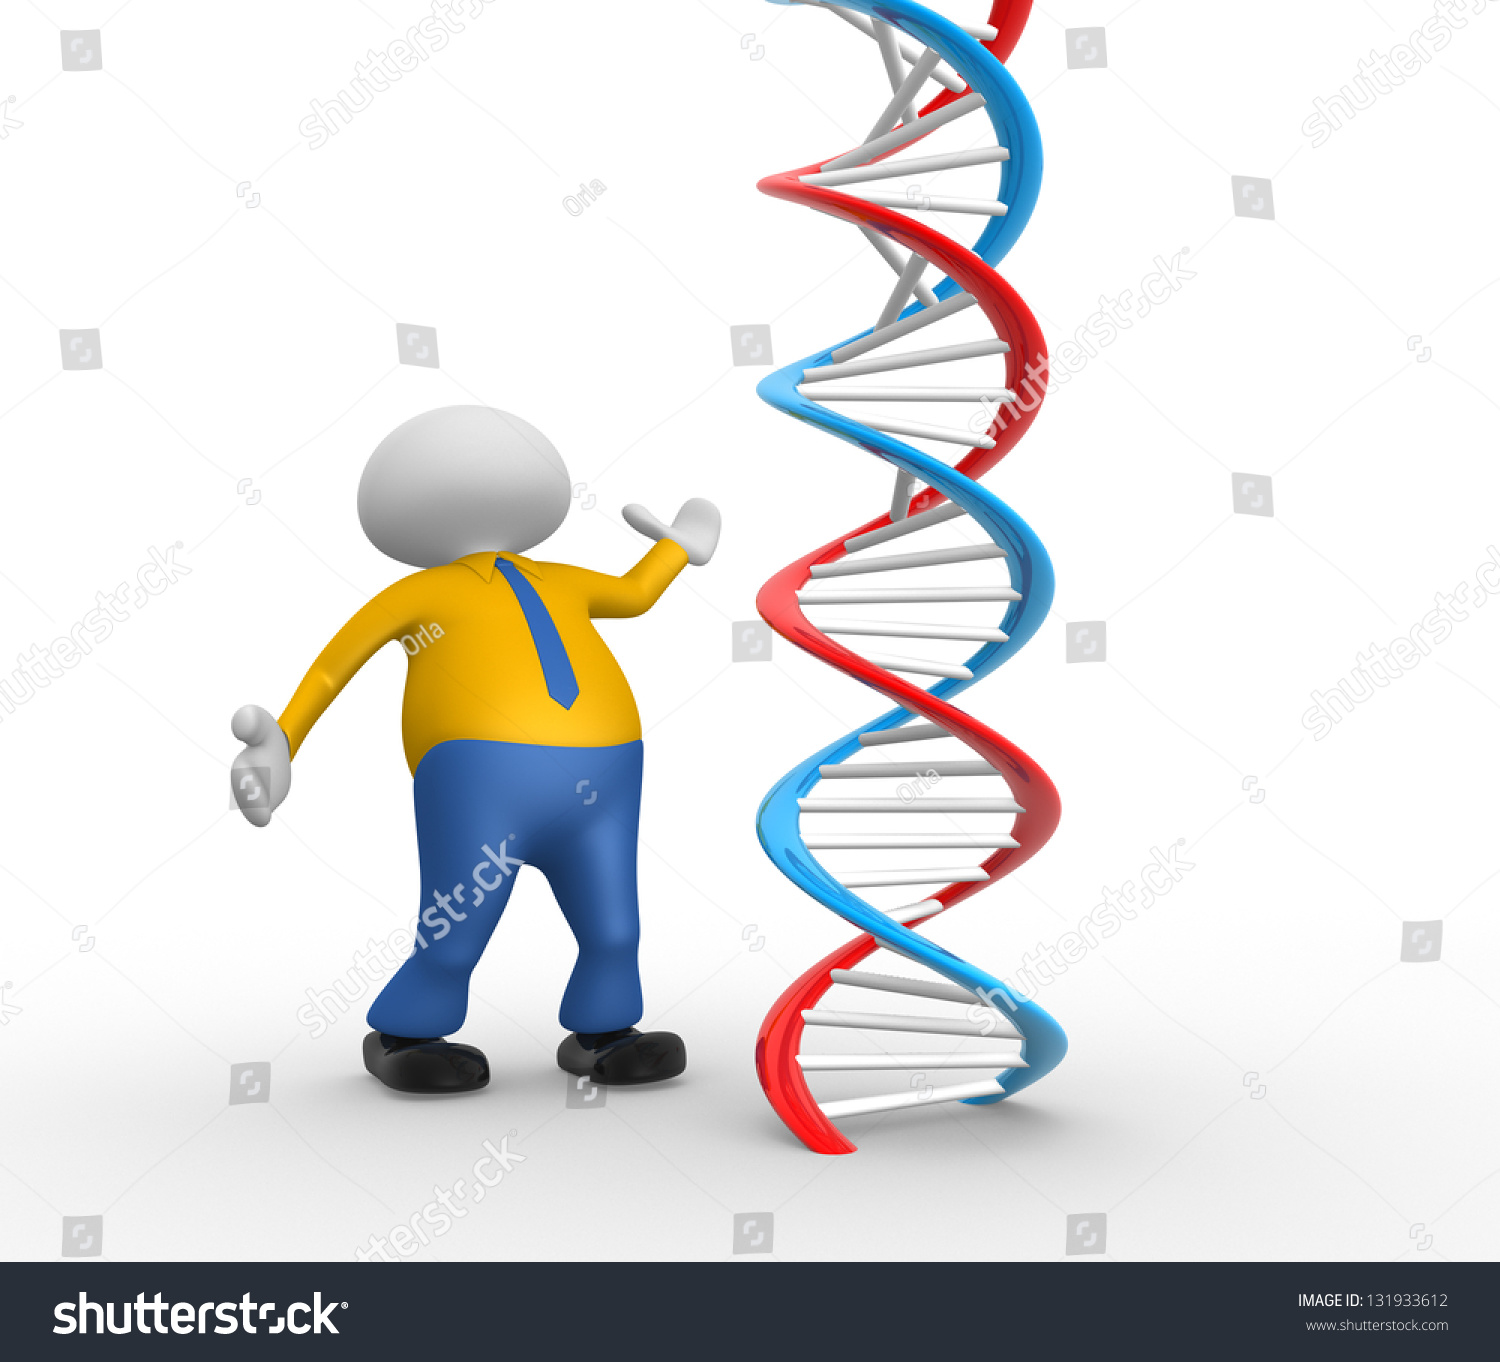 3d people man person dna structure stock illustration 131933612 3d people man person with dna structure ccuart Image collections